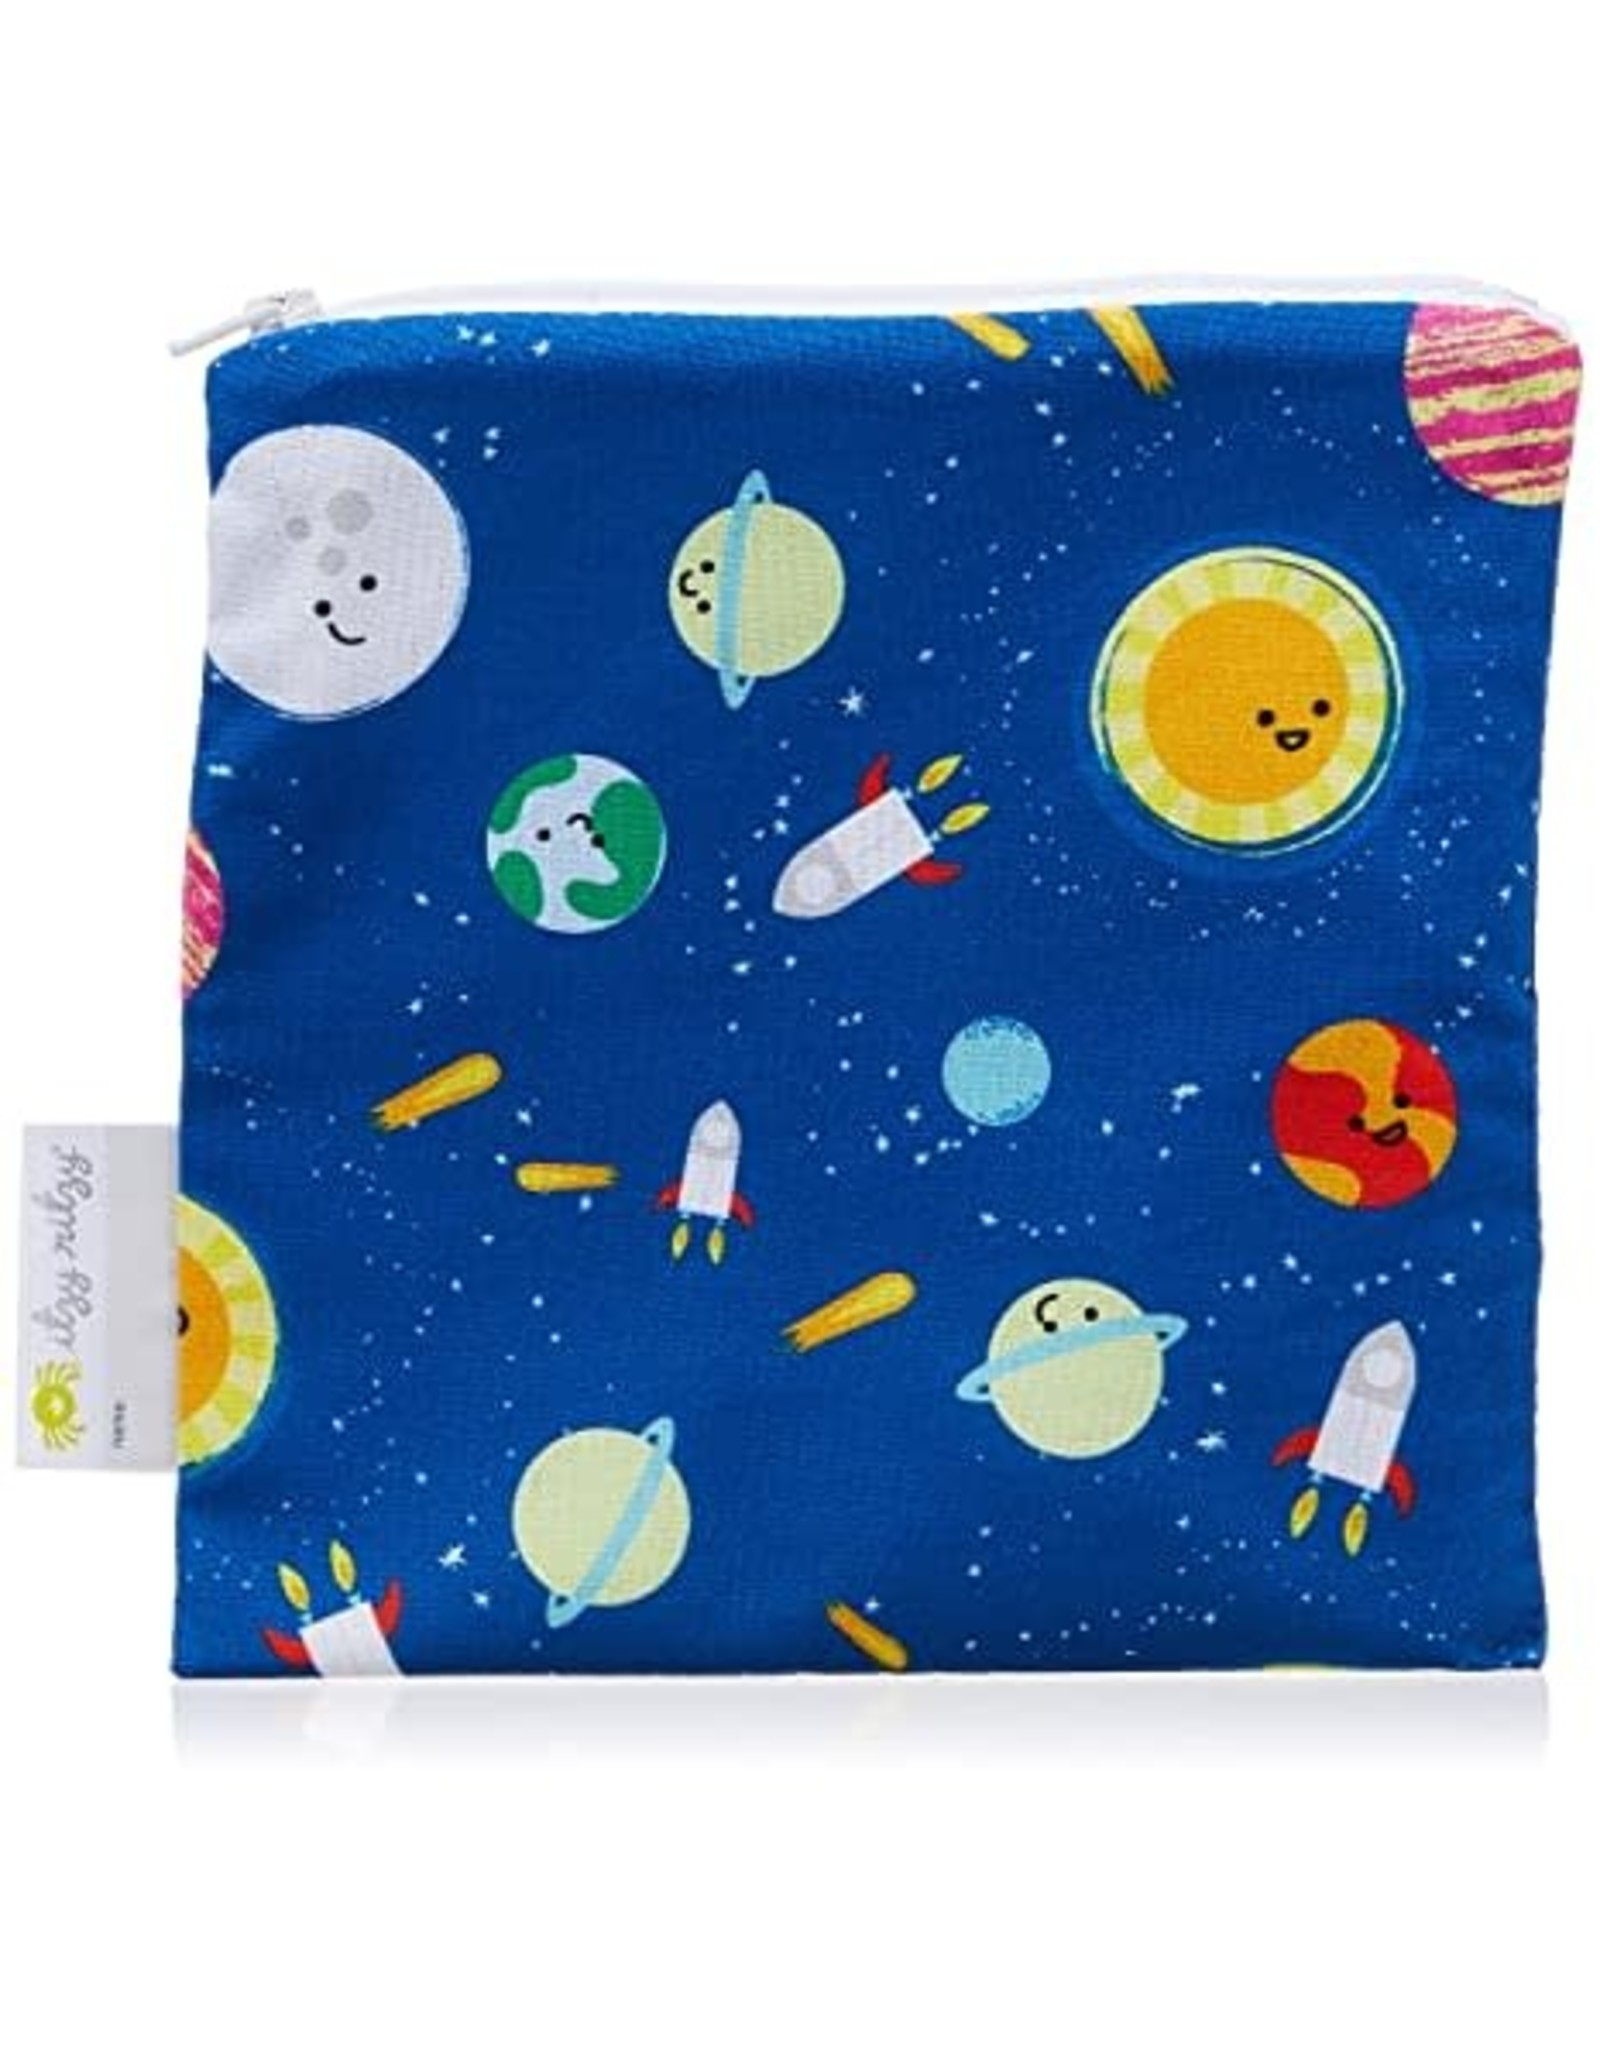 Itzy Ritzy ITZY Large Wet Bag - Interstellar